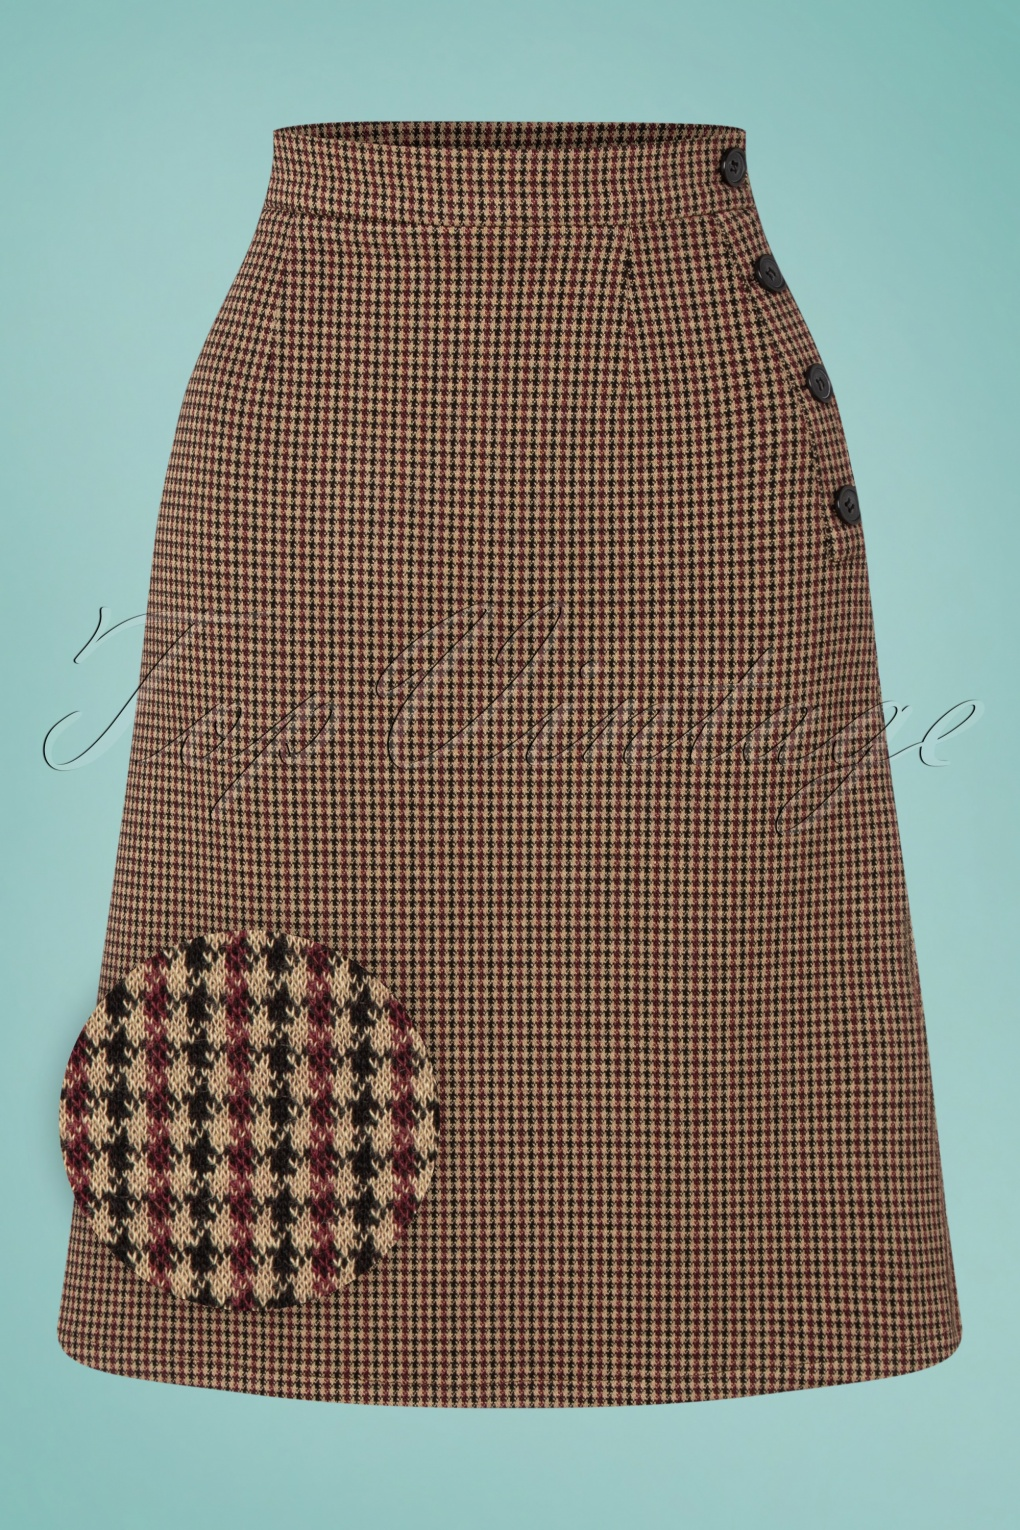 1960s Style Clothing & 60s Fashion 60s In The Moods Skirt in Houndstooth Burgundy £68.17 AT vintagedancer.com